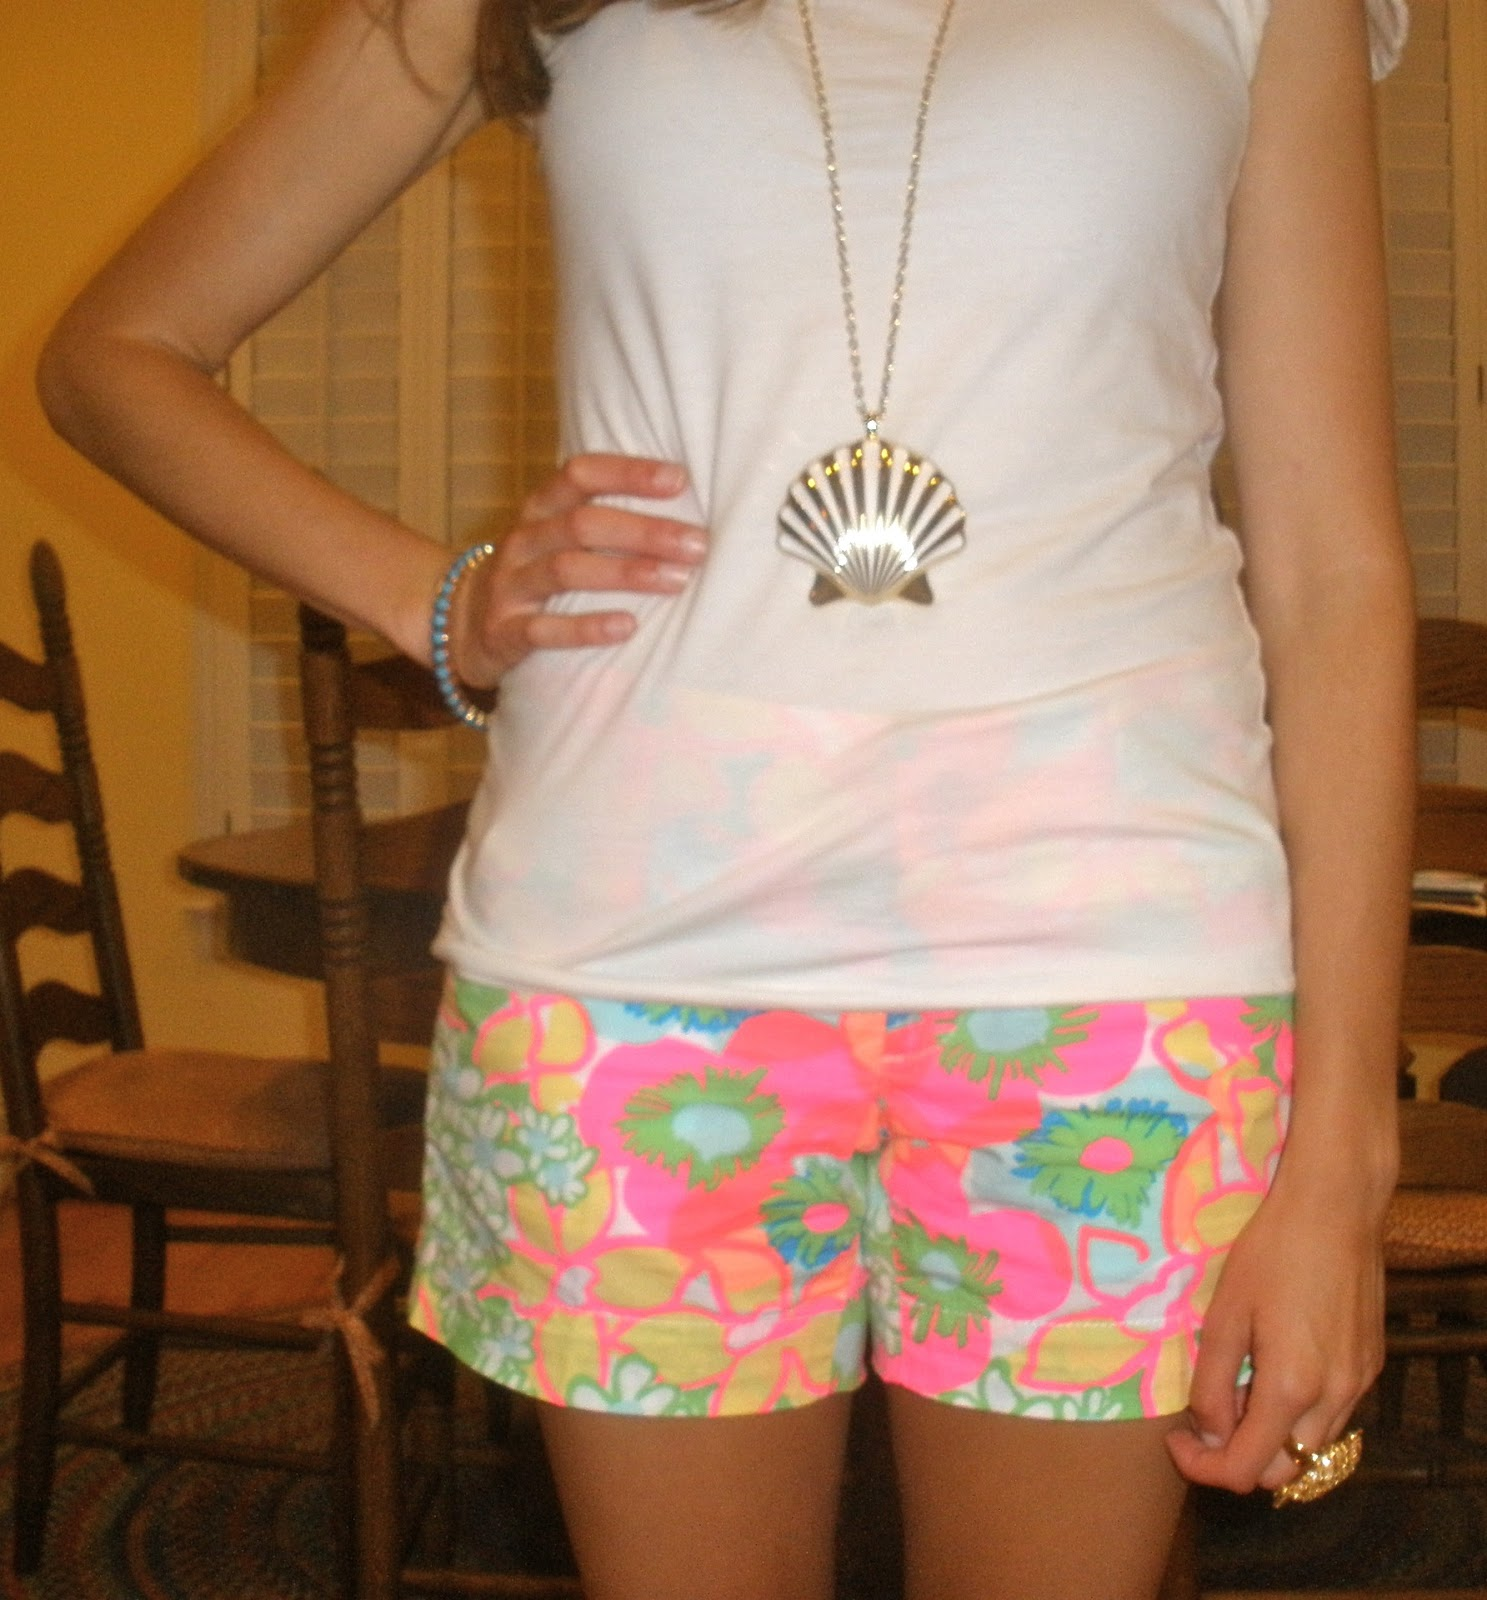 Necklace: Lilly Pulitzer Shell Yeah Necklace; Earrings: Lilly Pulitzer  Critter Bow Earrings; Bracelet: Lilly Pulitzer